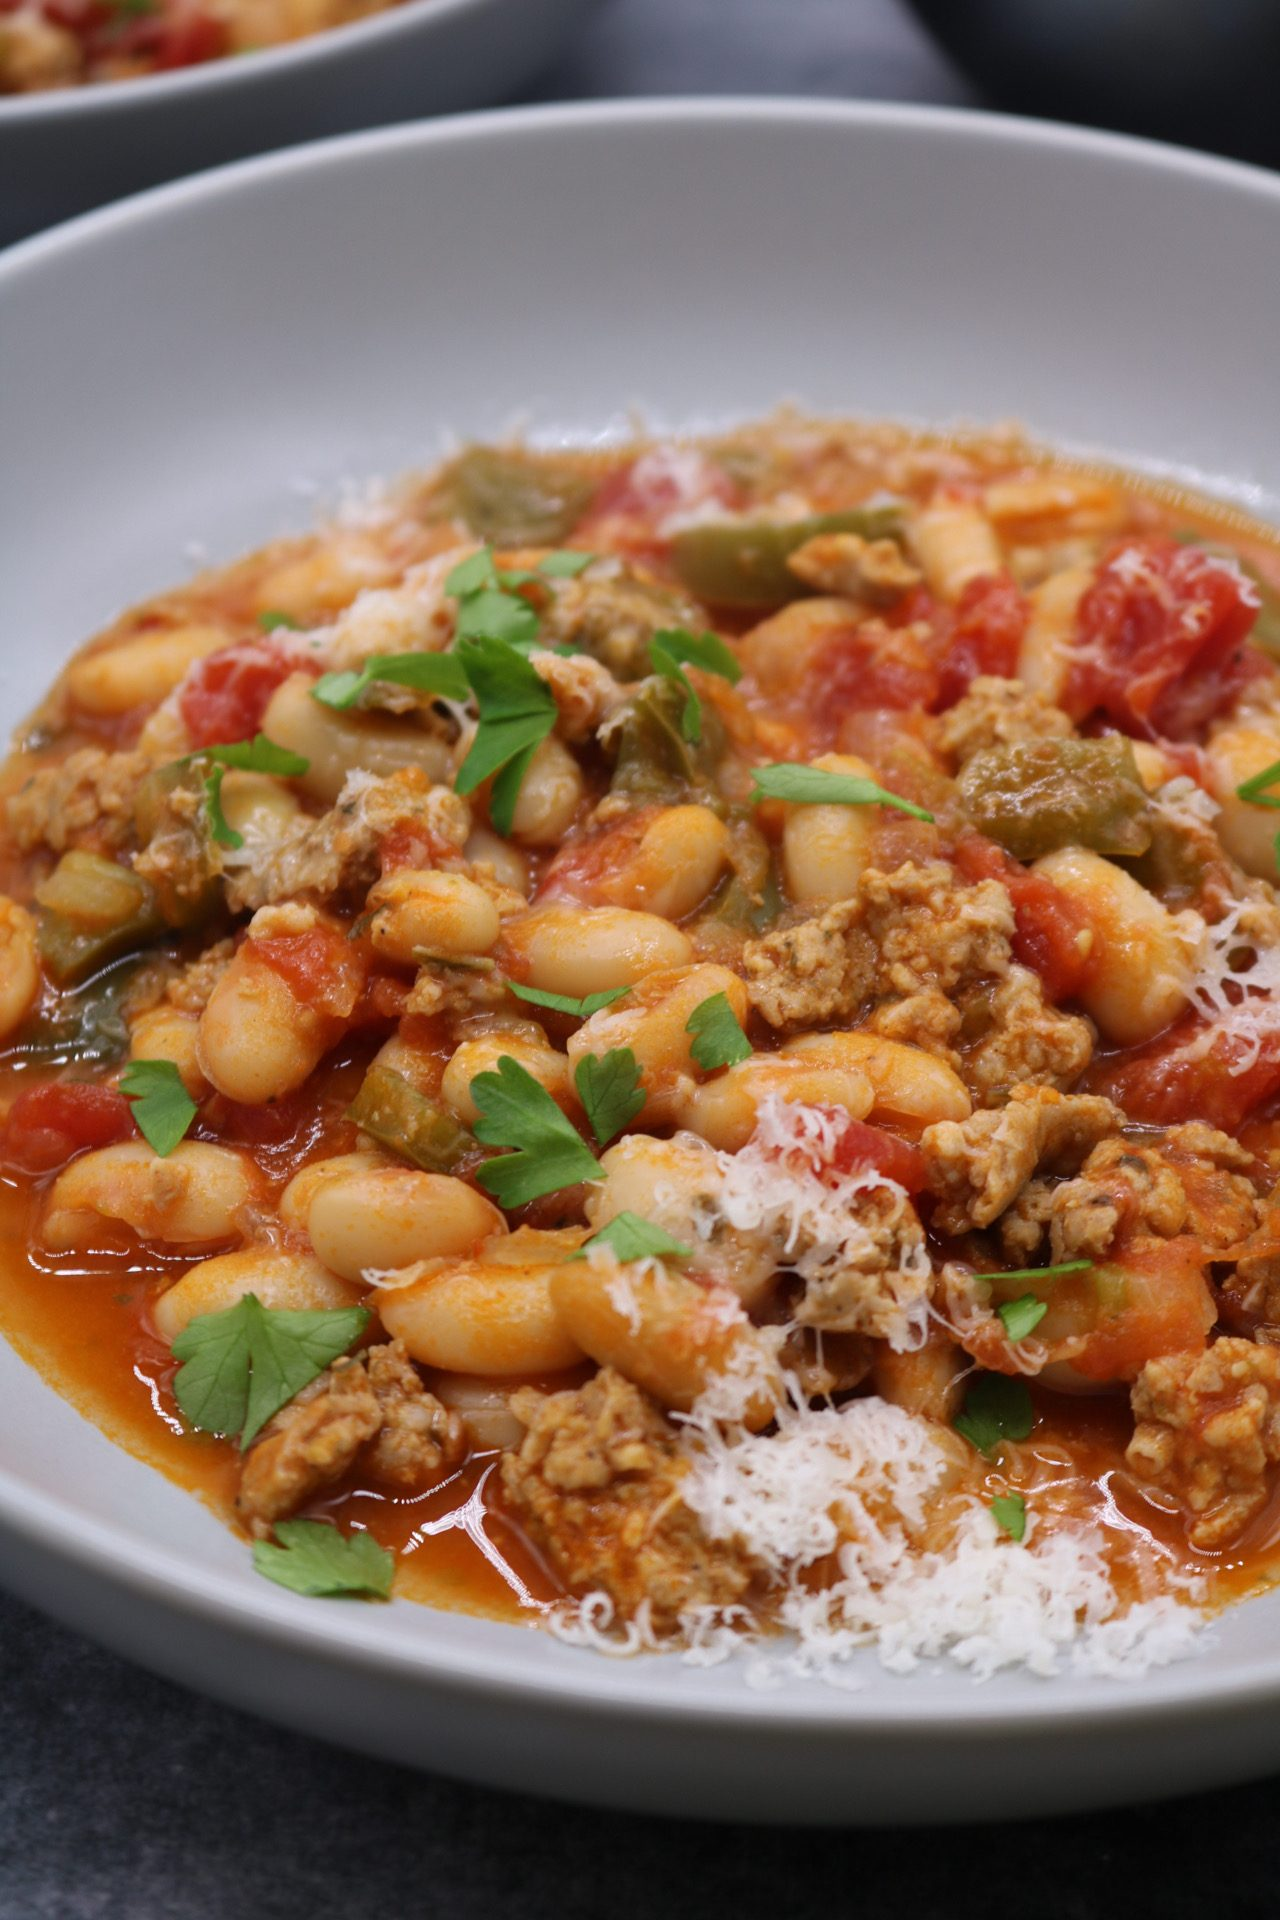 Spicy Italian Sausage and Beans, Spicy Italian Sausage and Beans